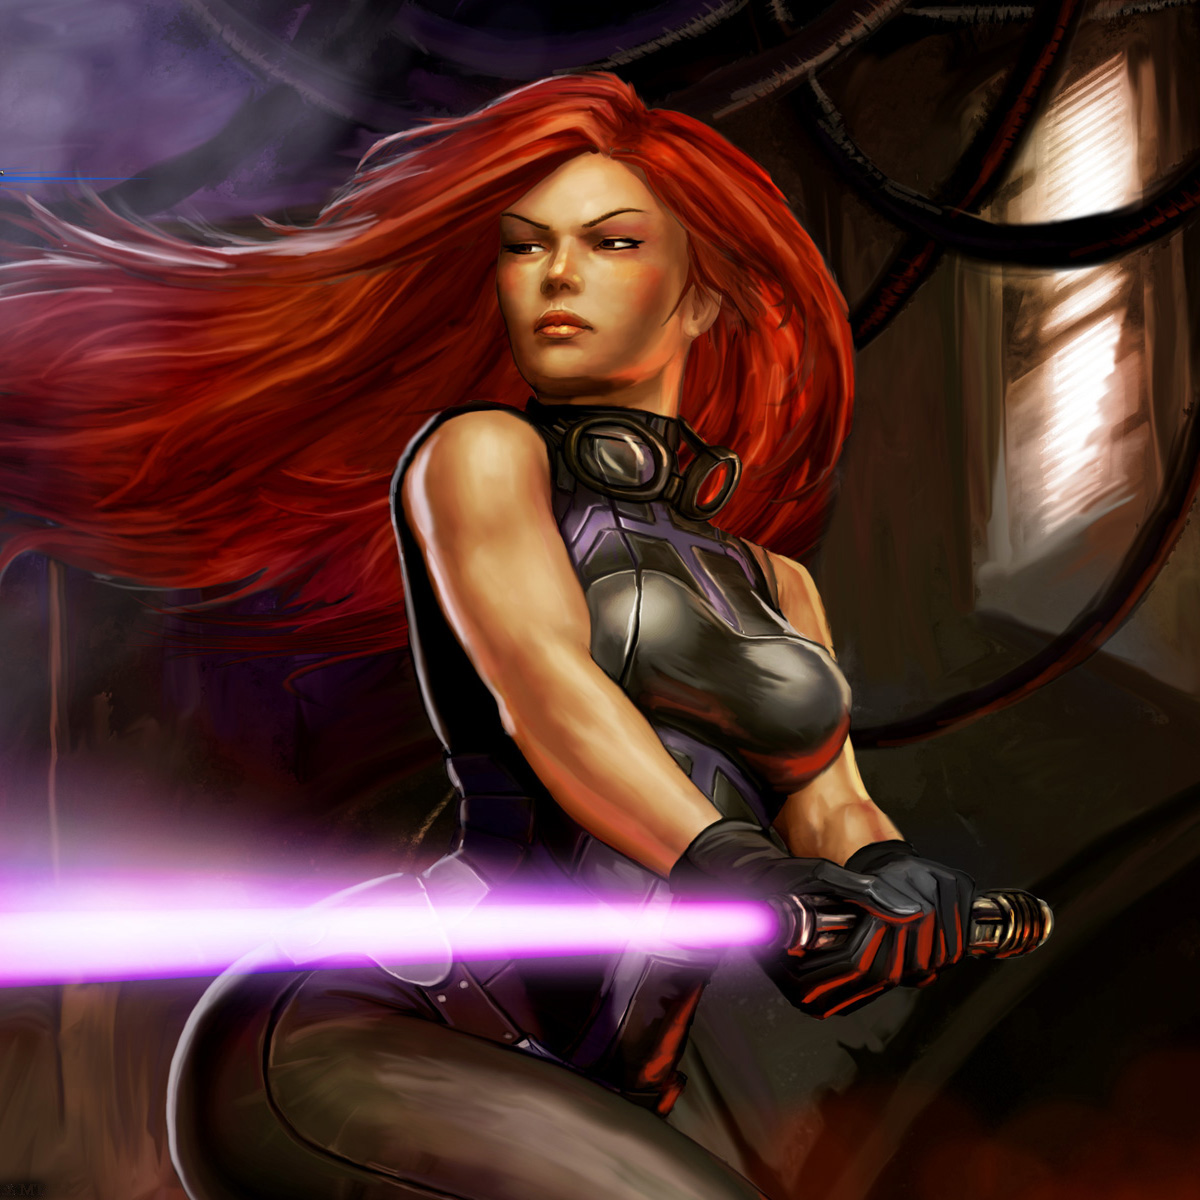 Mara Jade is perhaps the most popular Expanded Universe character